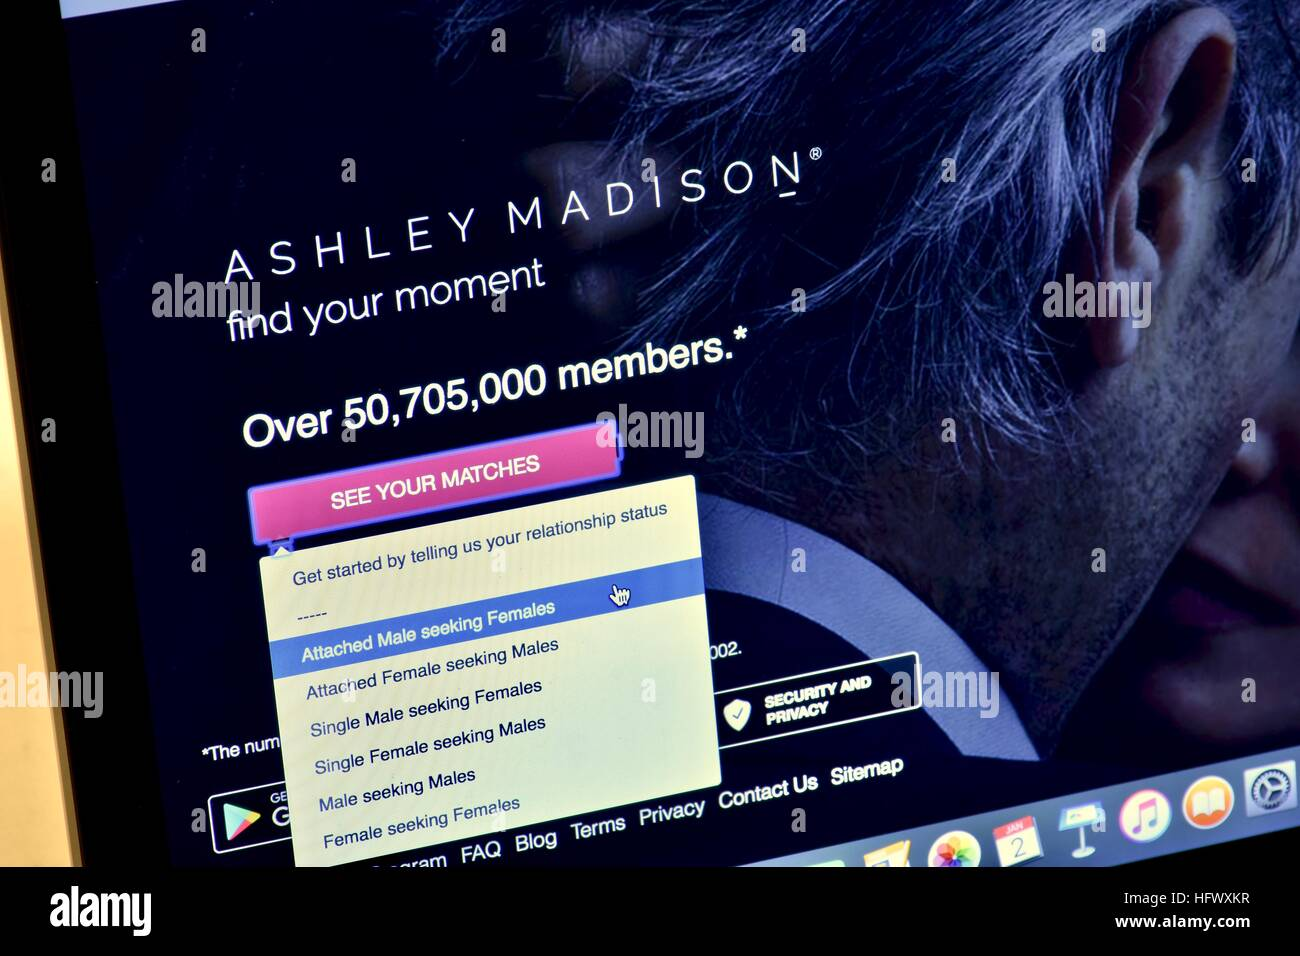 ashley madison hookup ticket